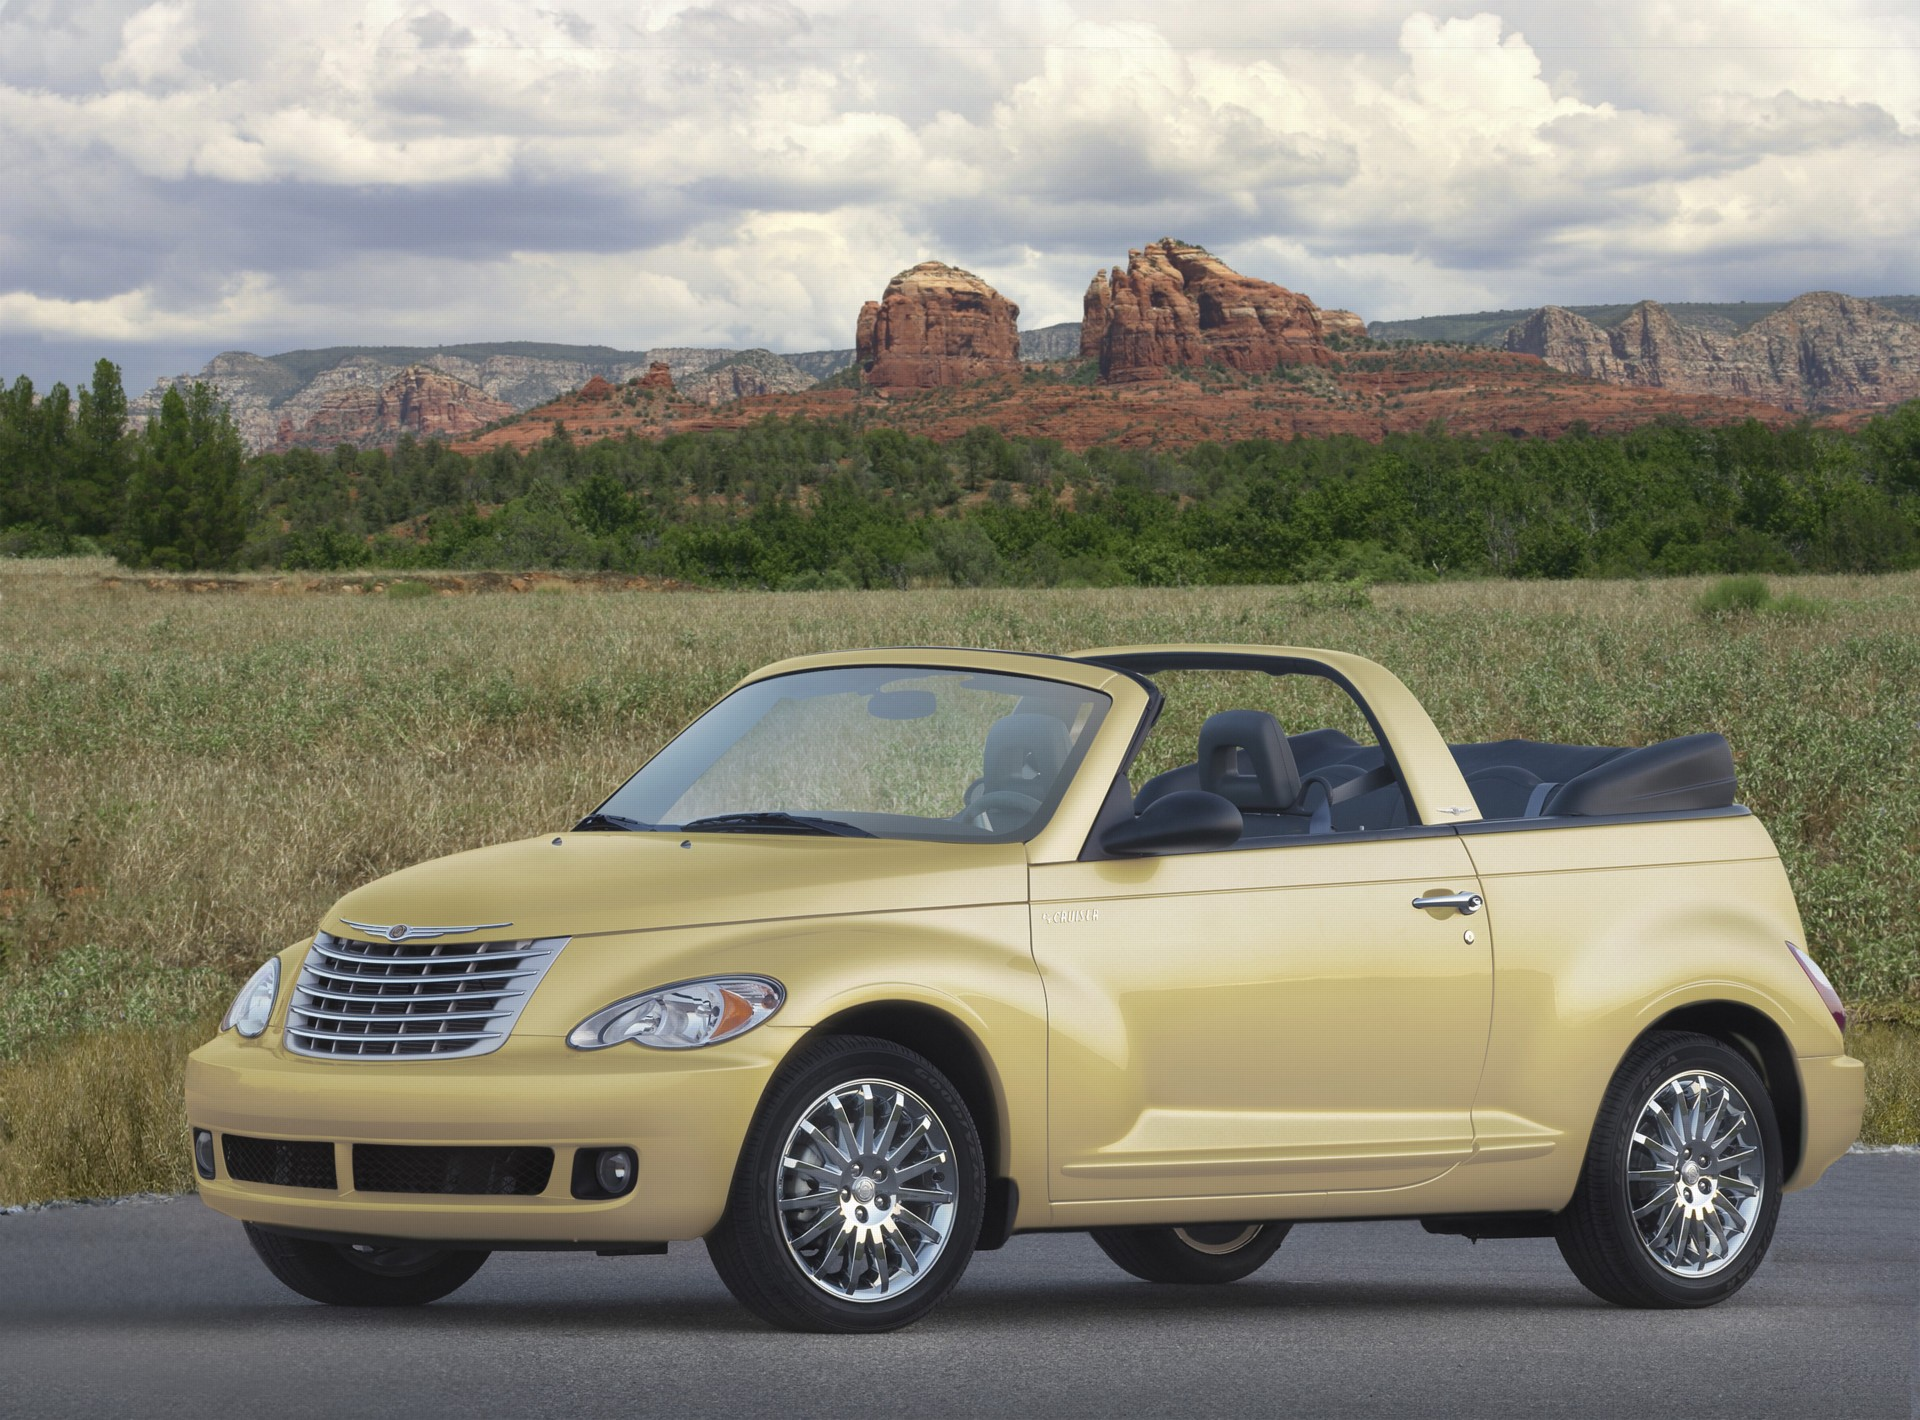 2007 Chrysler Pt Cruiser Convertible Pictures History